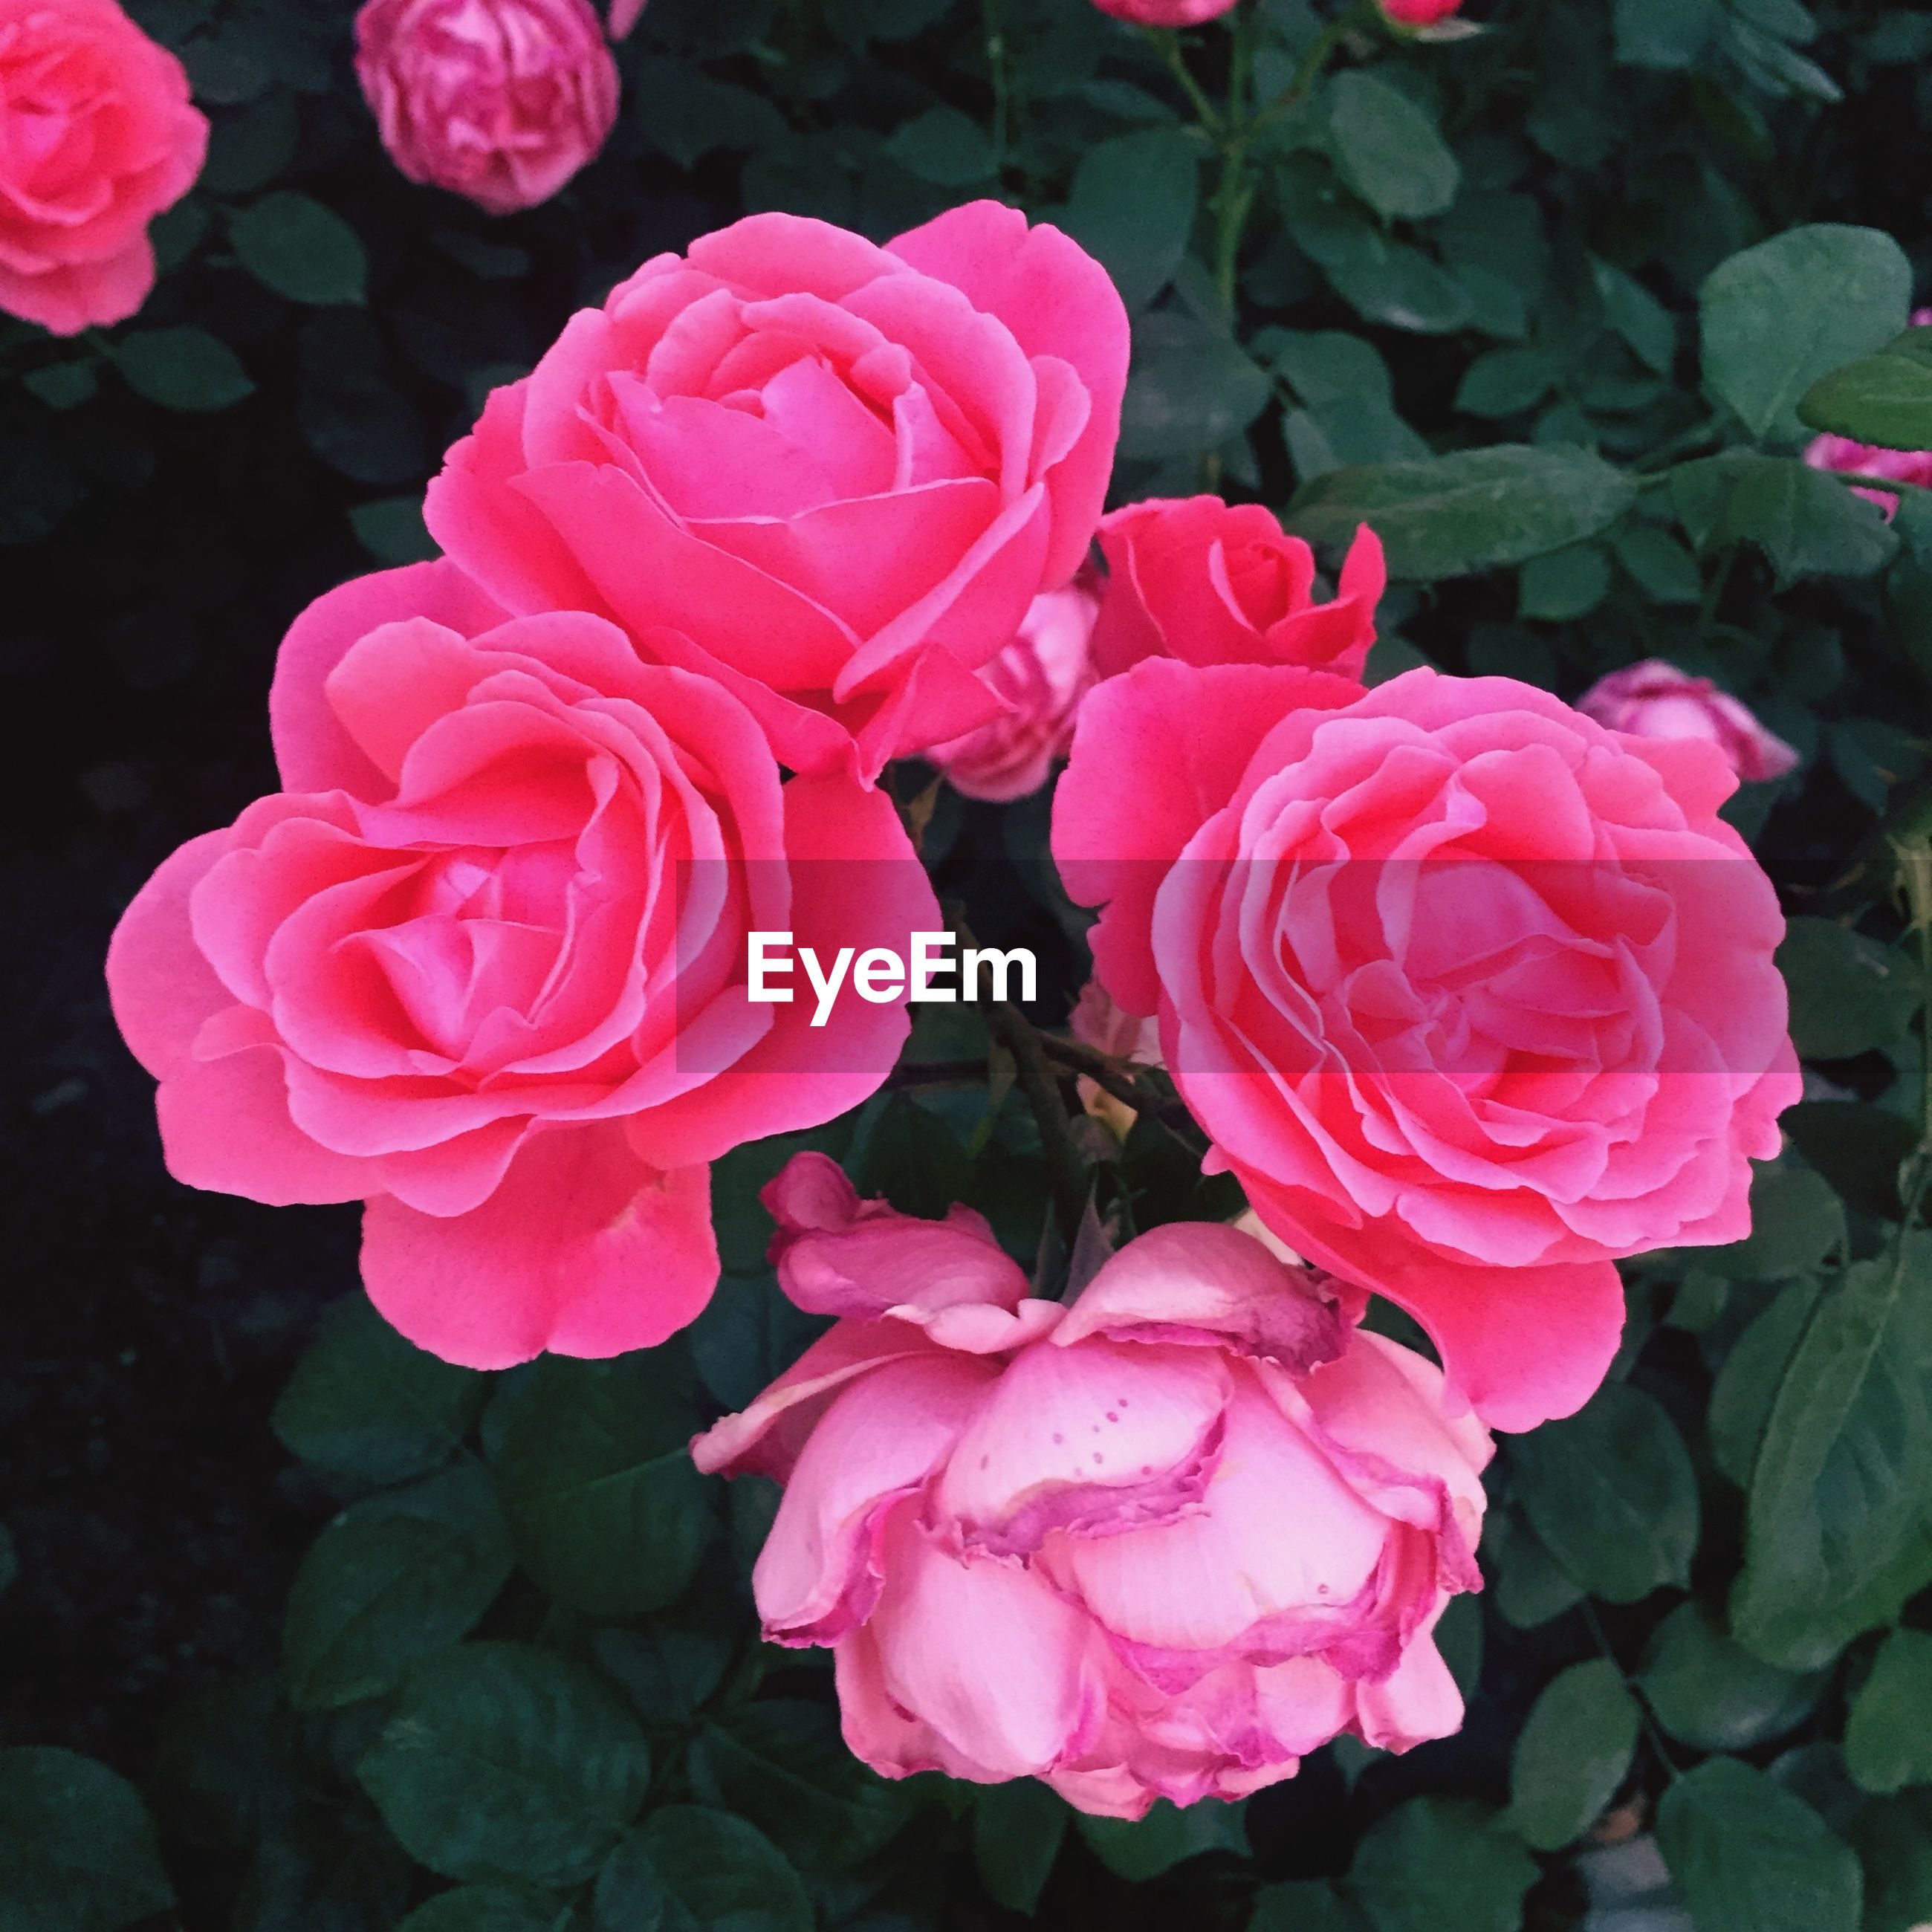 flower, petal, freshness, fragility, flower head, pink color, beauty in nature, rose - flower, growth, close-up, nature, blooming, high angle view, plant, leaf, pink, rose, in bloom, blossom, no people